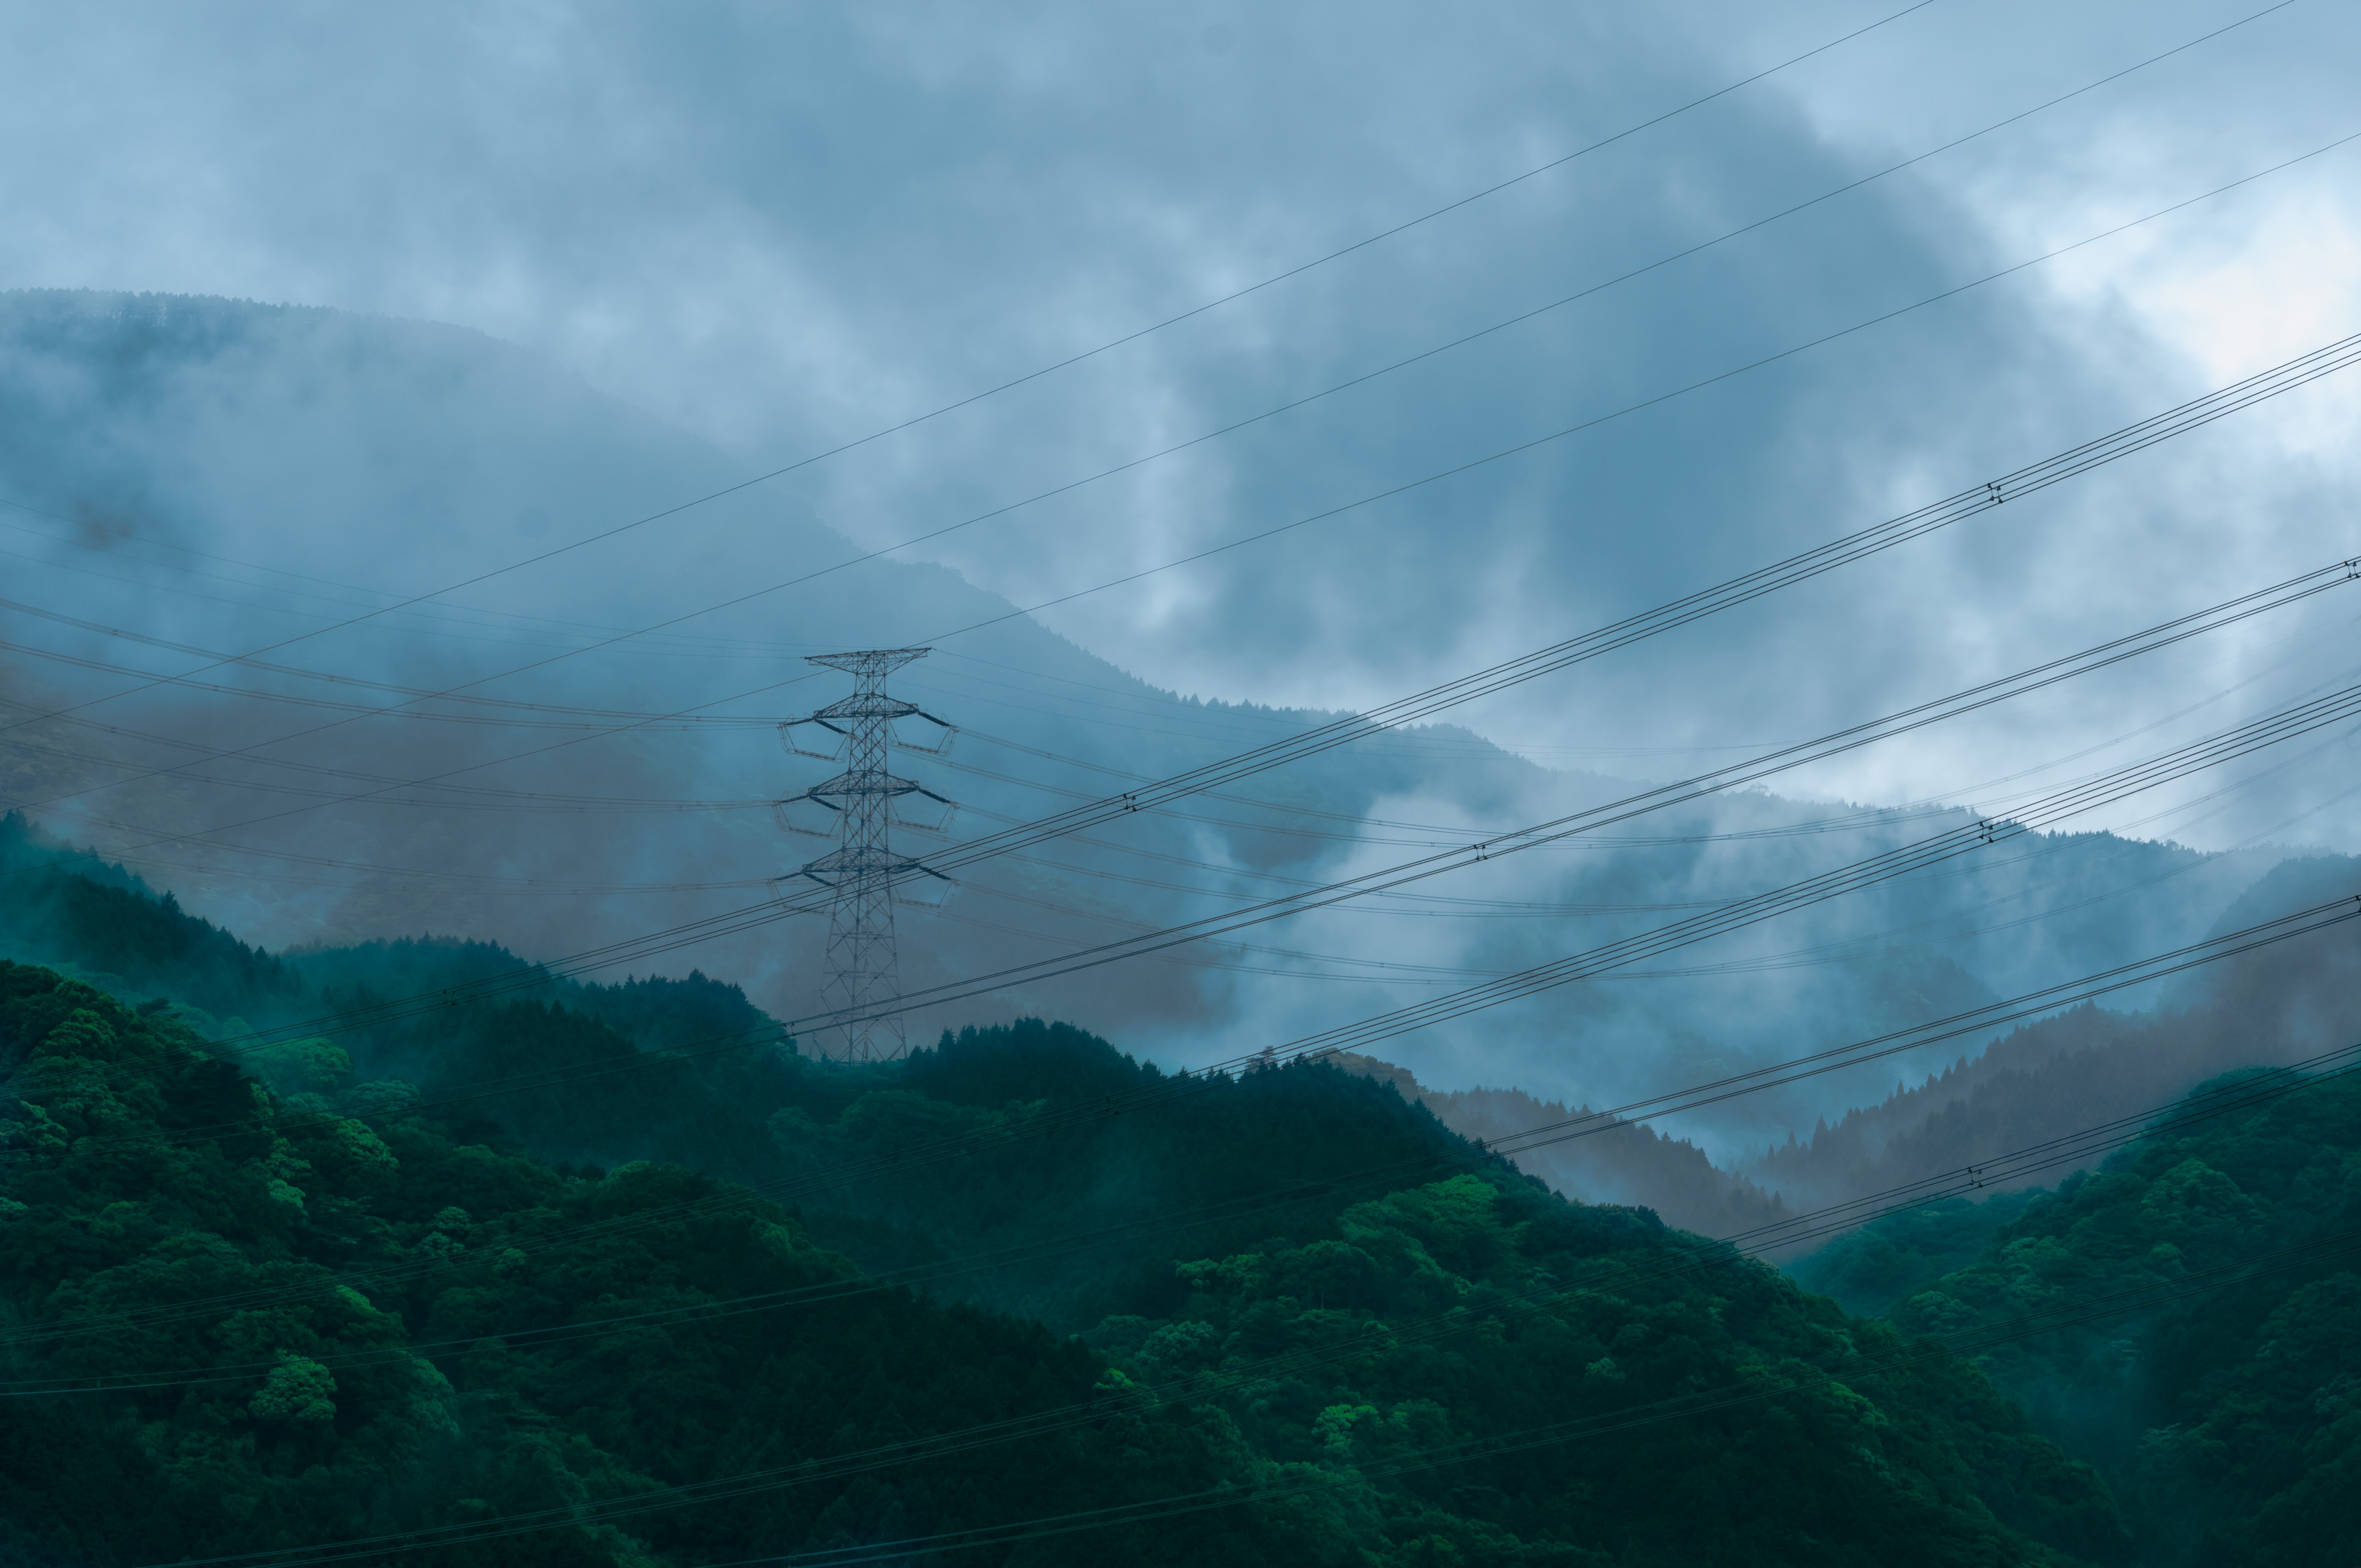 A number of power lines between transmission towers on wooded hills